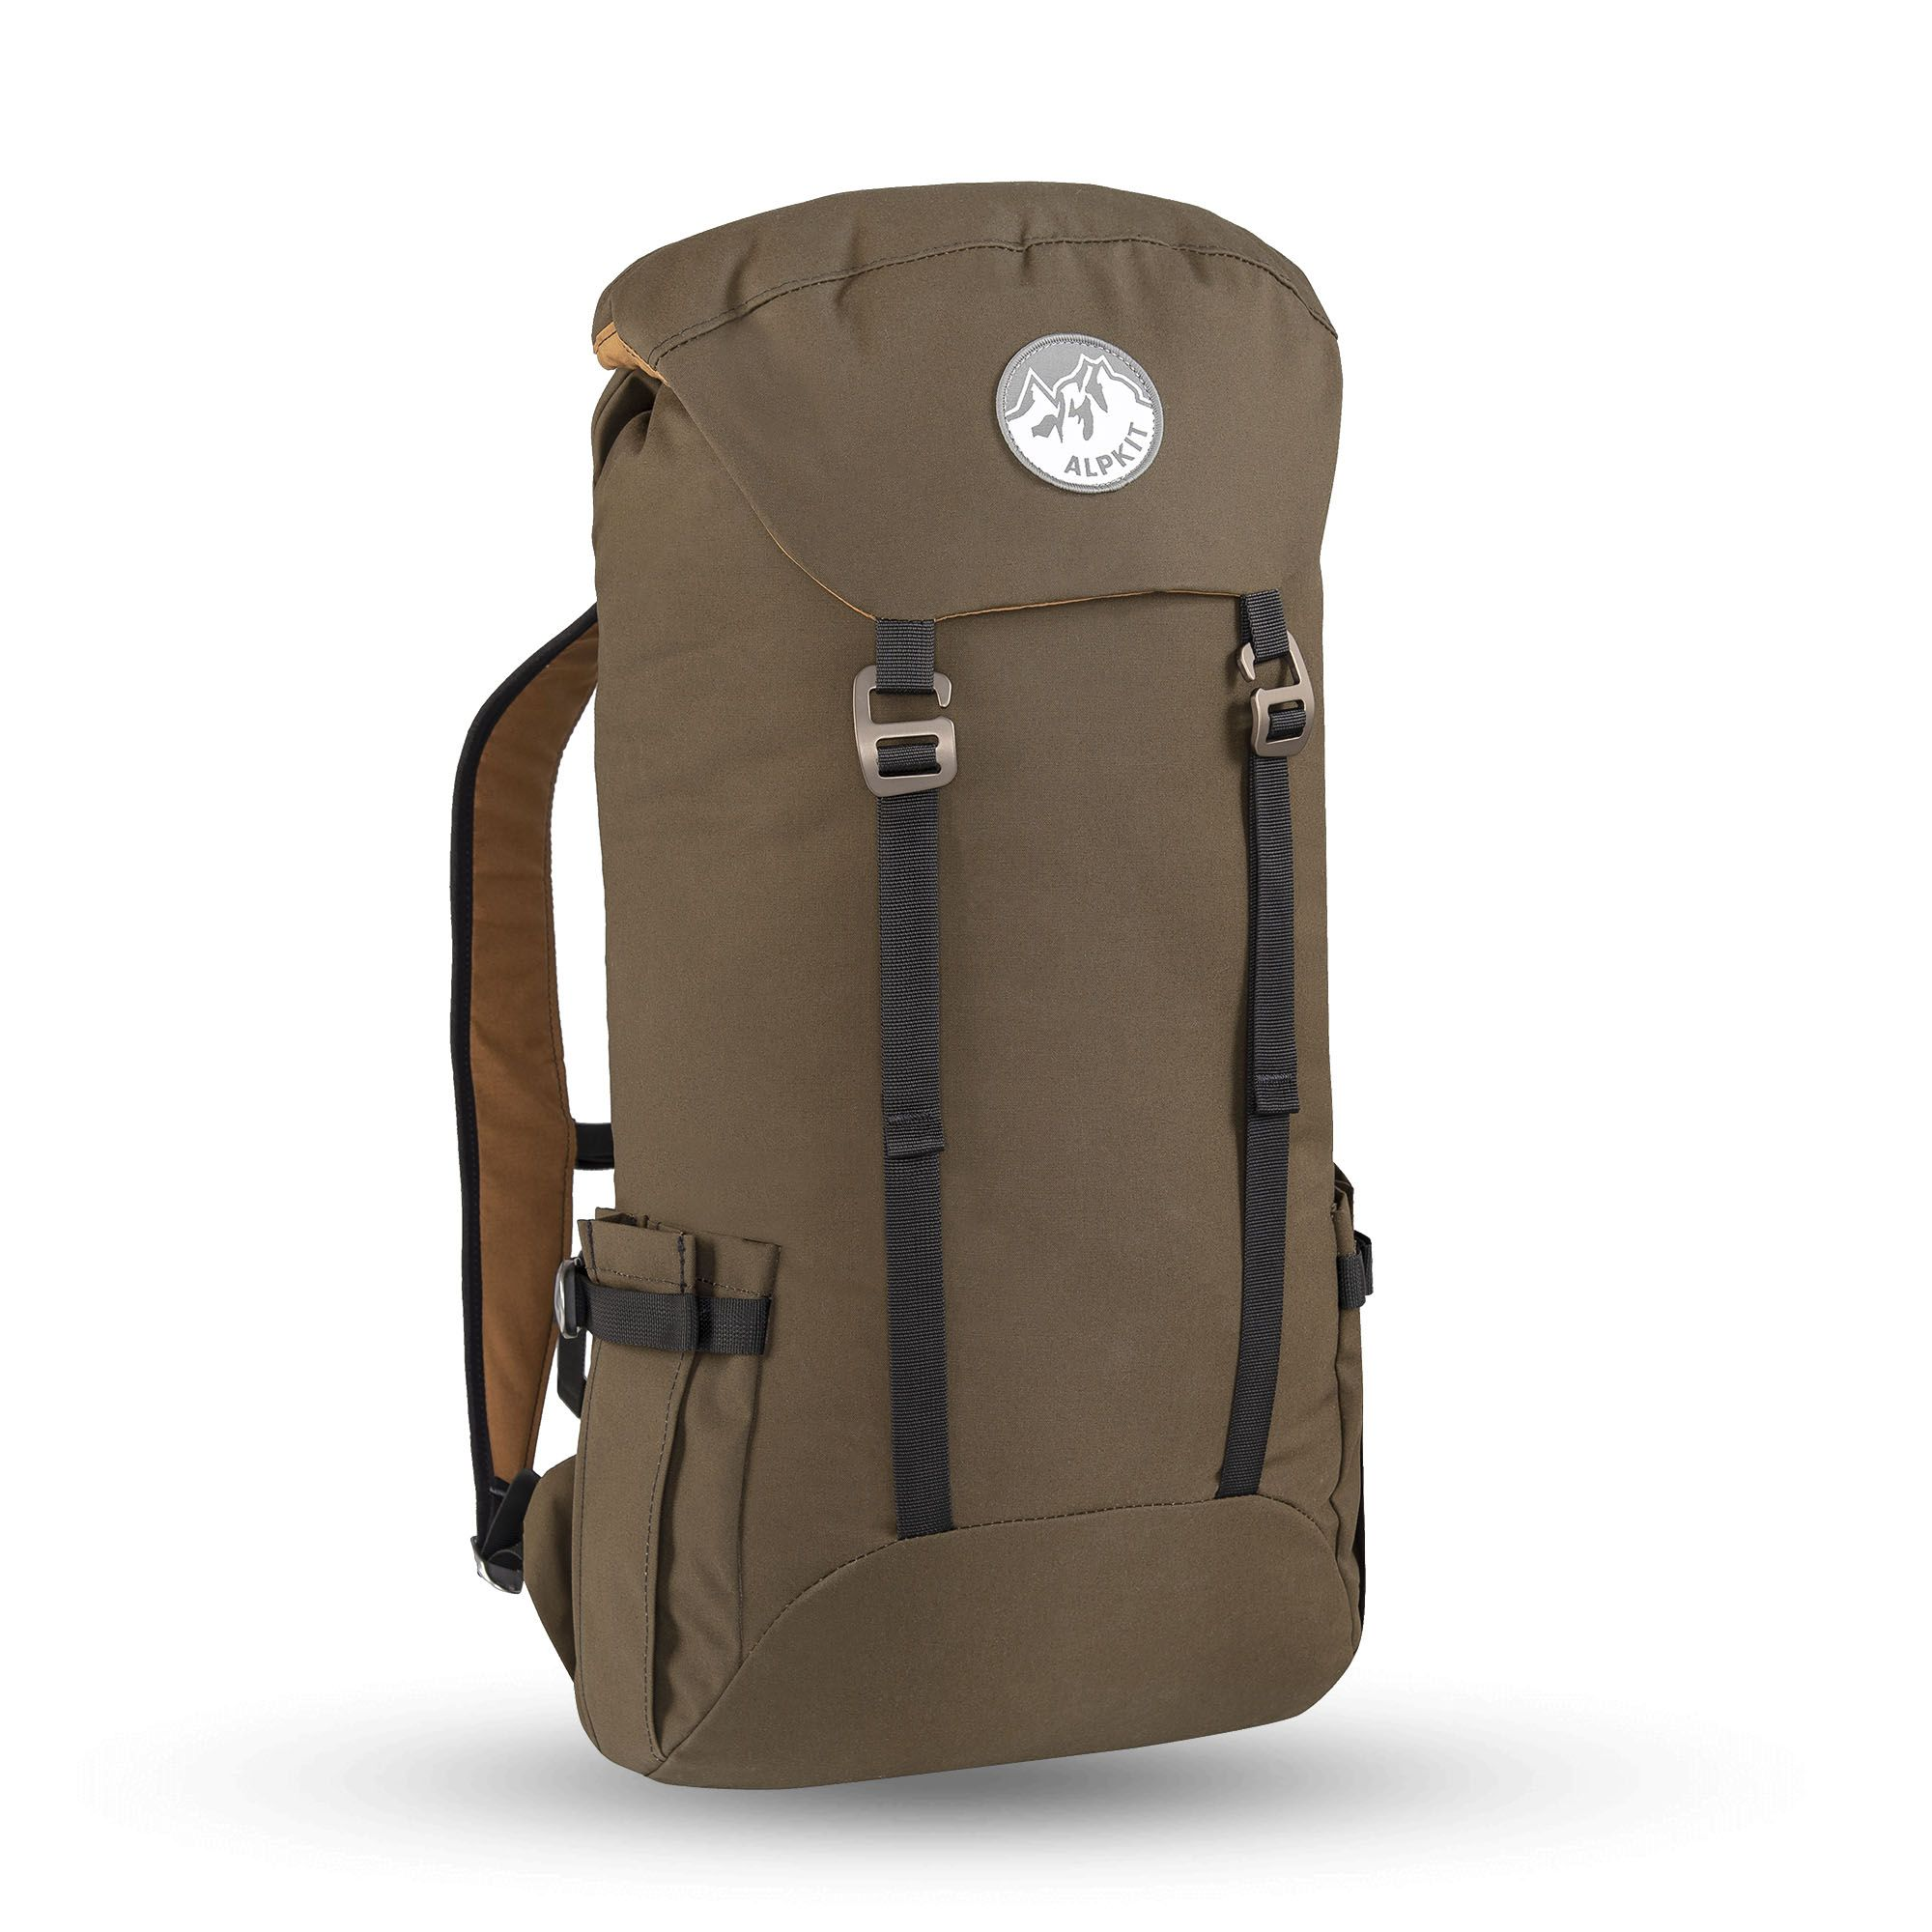 0626cd872 Brevent - 22 litre waxed cotton daypack for mountain walking and travel -  Alpkit